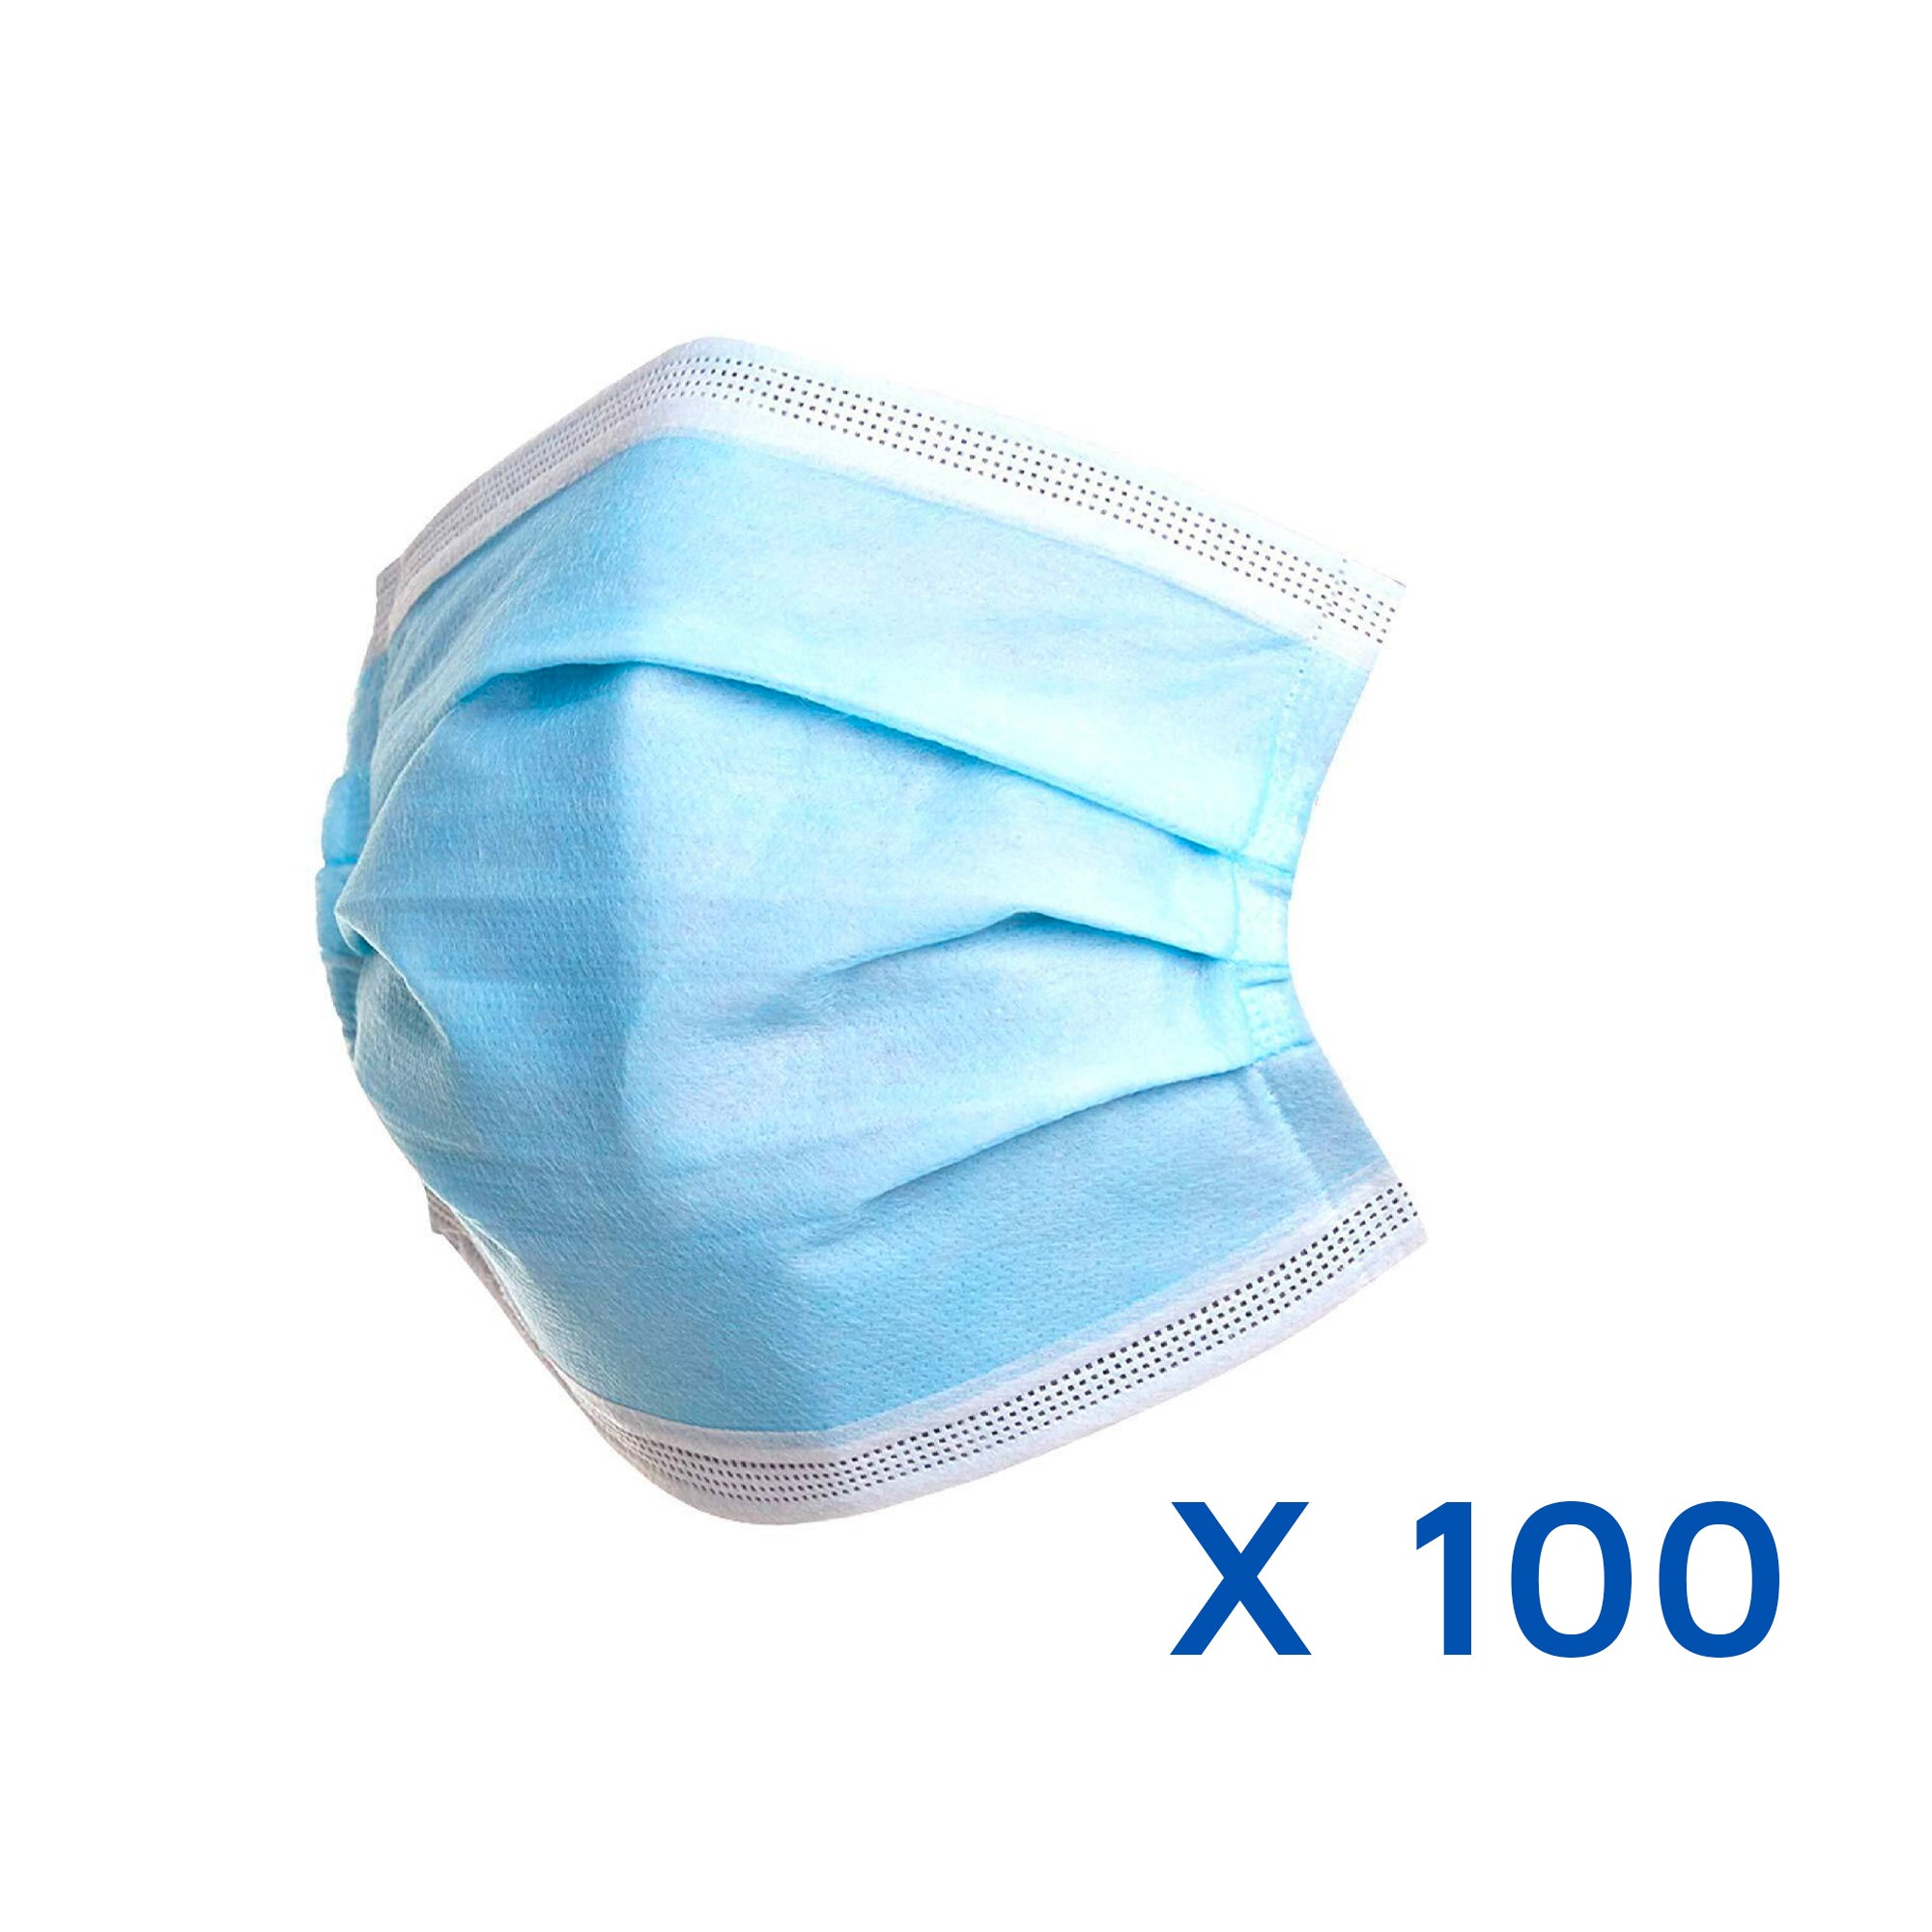 100 3 Ply Protective Face Masks (18p per mask)